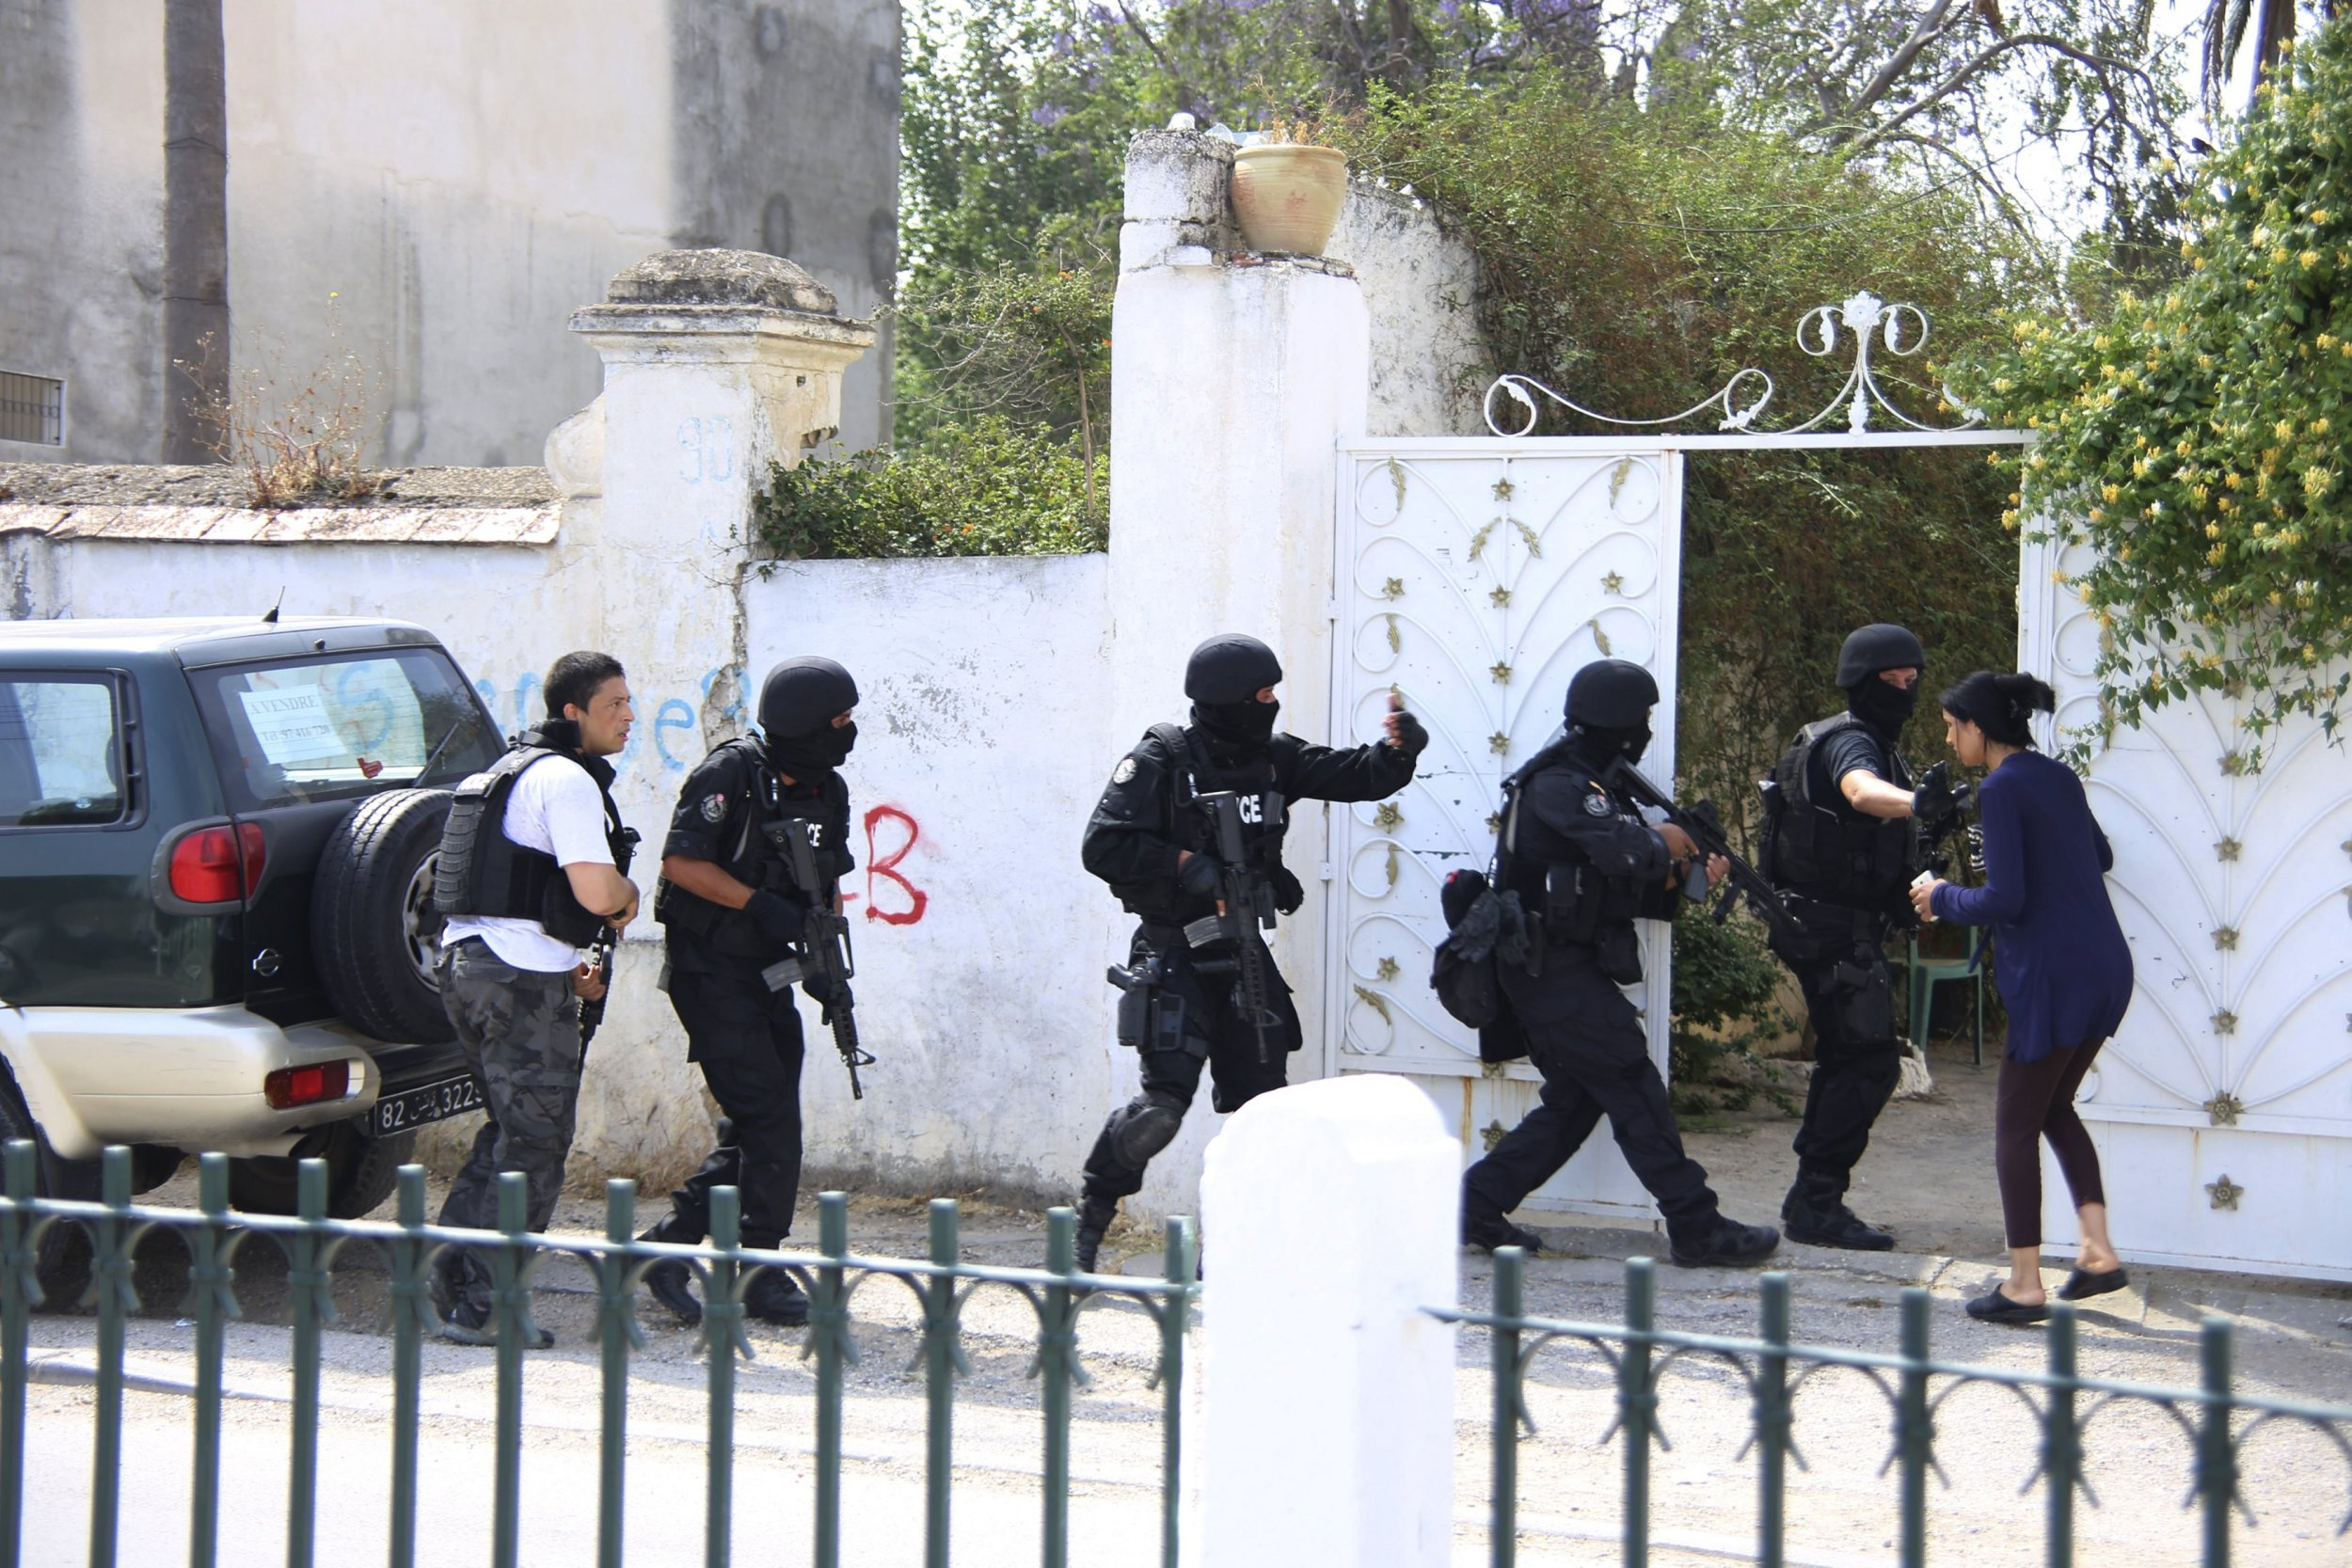 2015-05-25T104210Z_1805862308_GF10000106914_RTRMADP_3_TUNISIA-SECURITY-ARMY